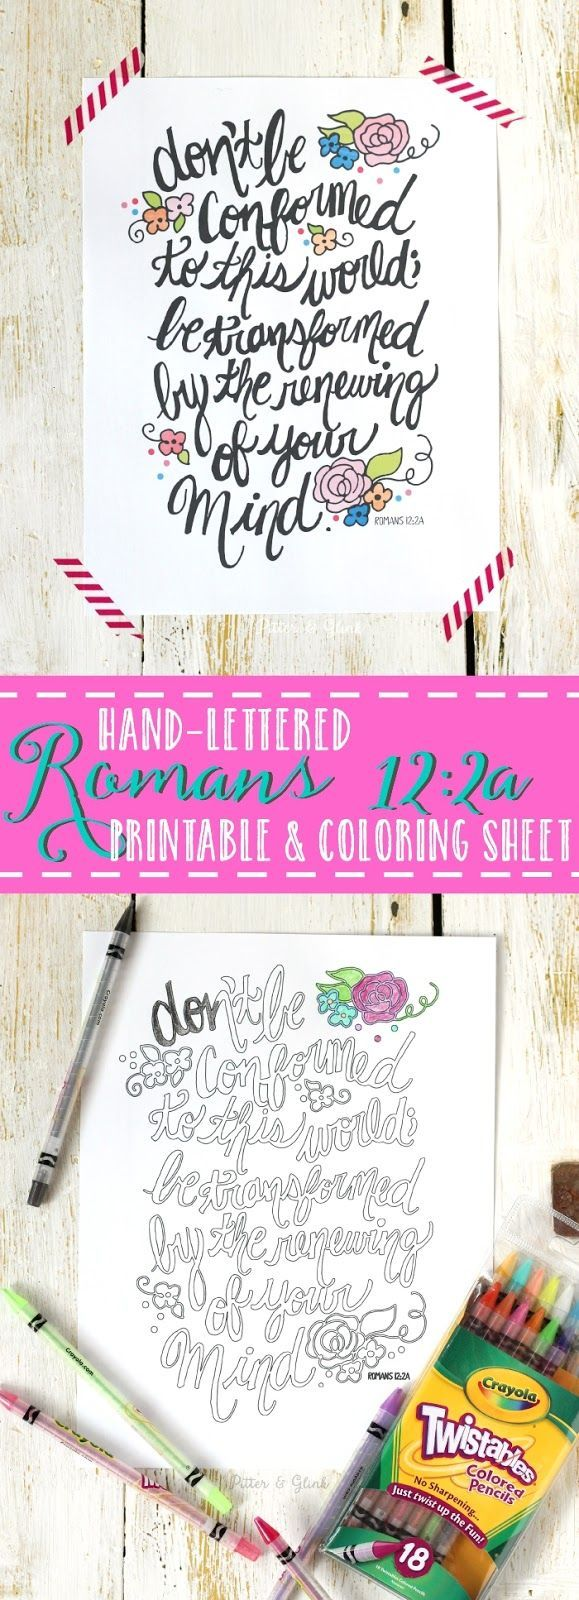 scripture doodles 4 new testament romans 12 journaling and bible